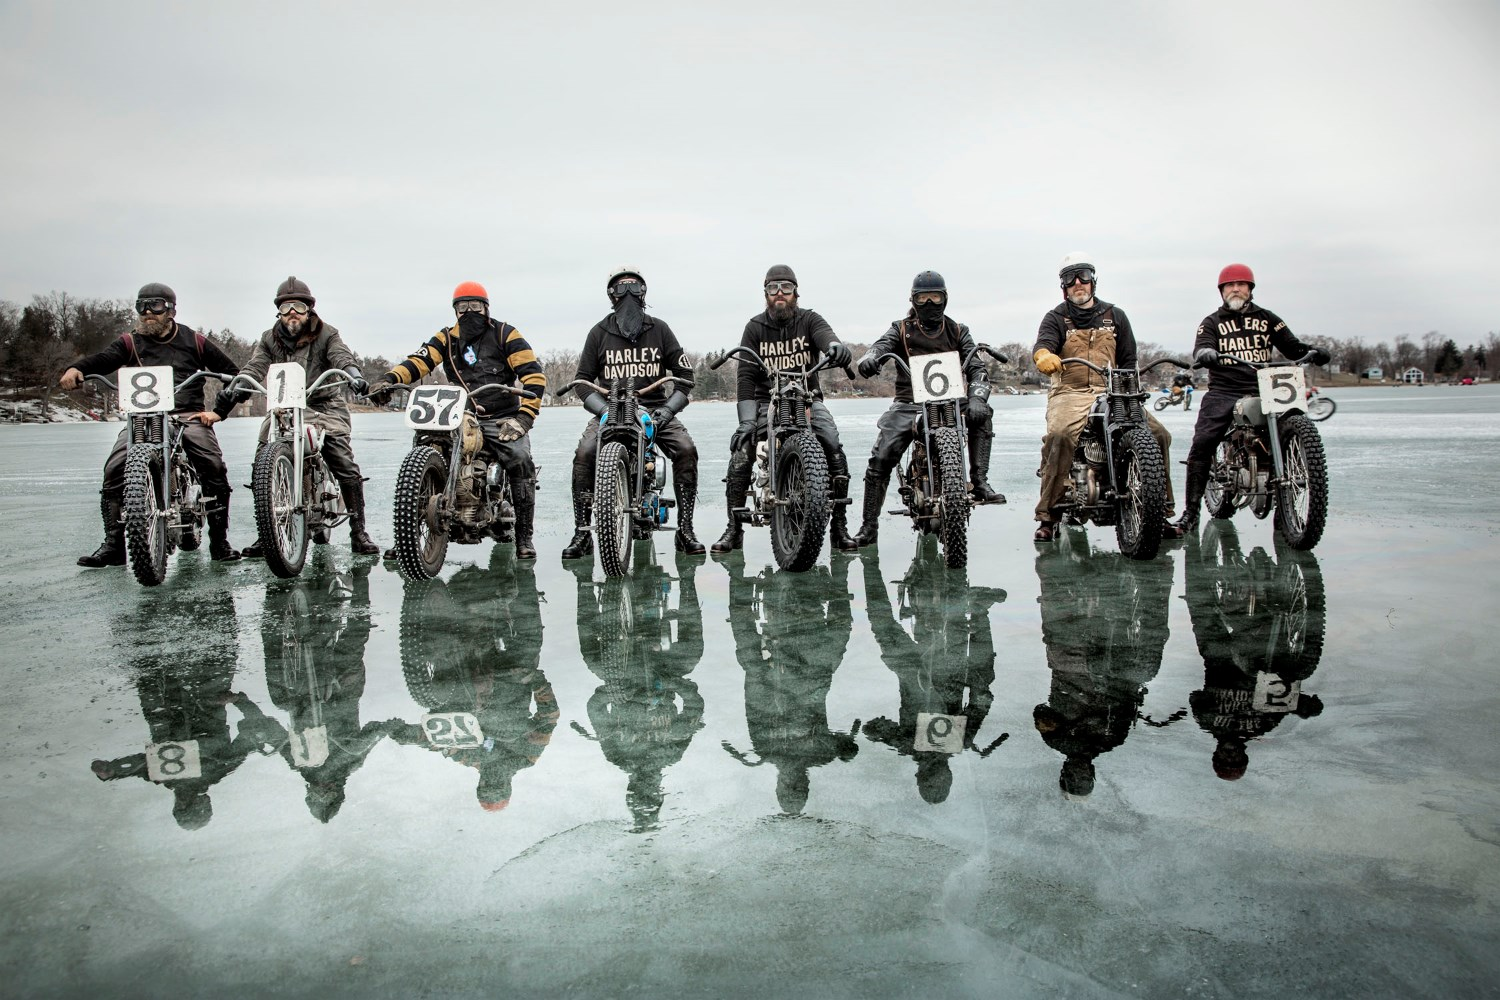 The Frozen Few, Ice Racing in the USA